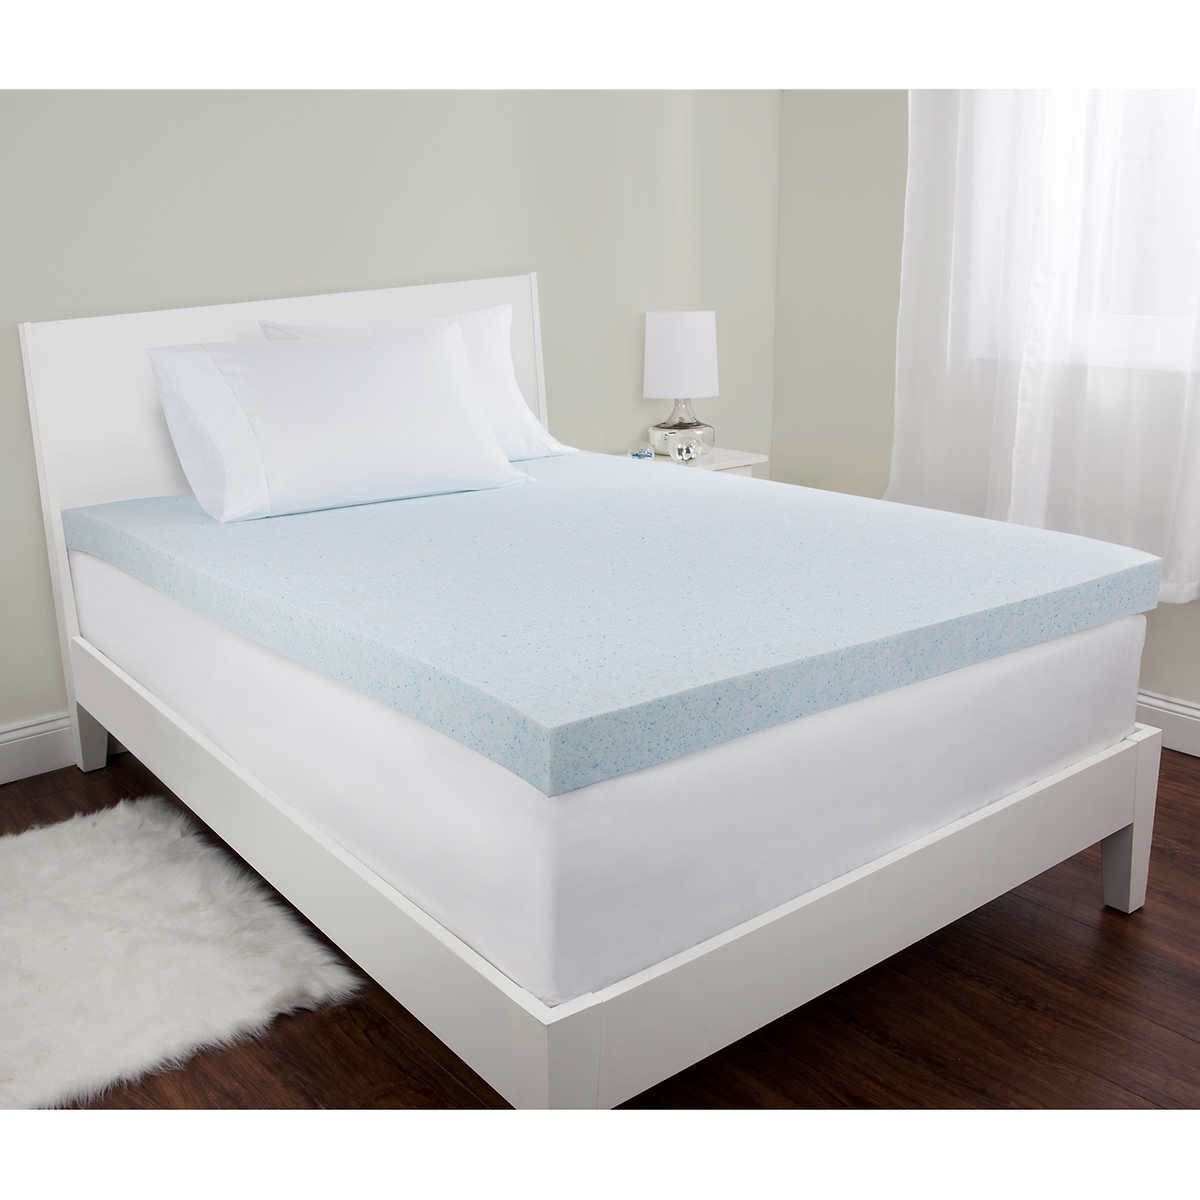 Beautyrest Energex Mattress Topper with Thermaphase Gel